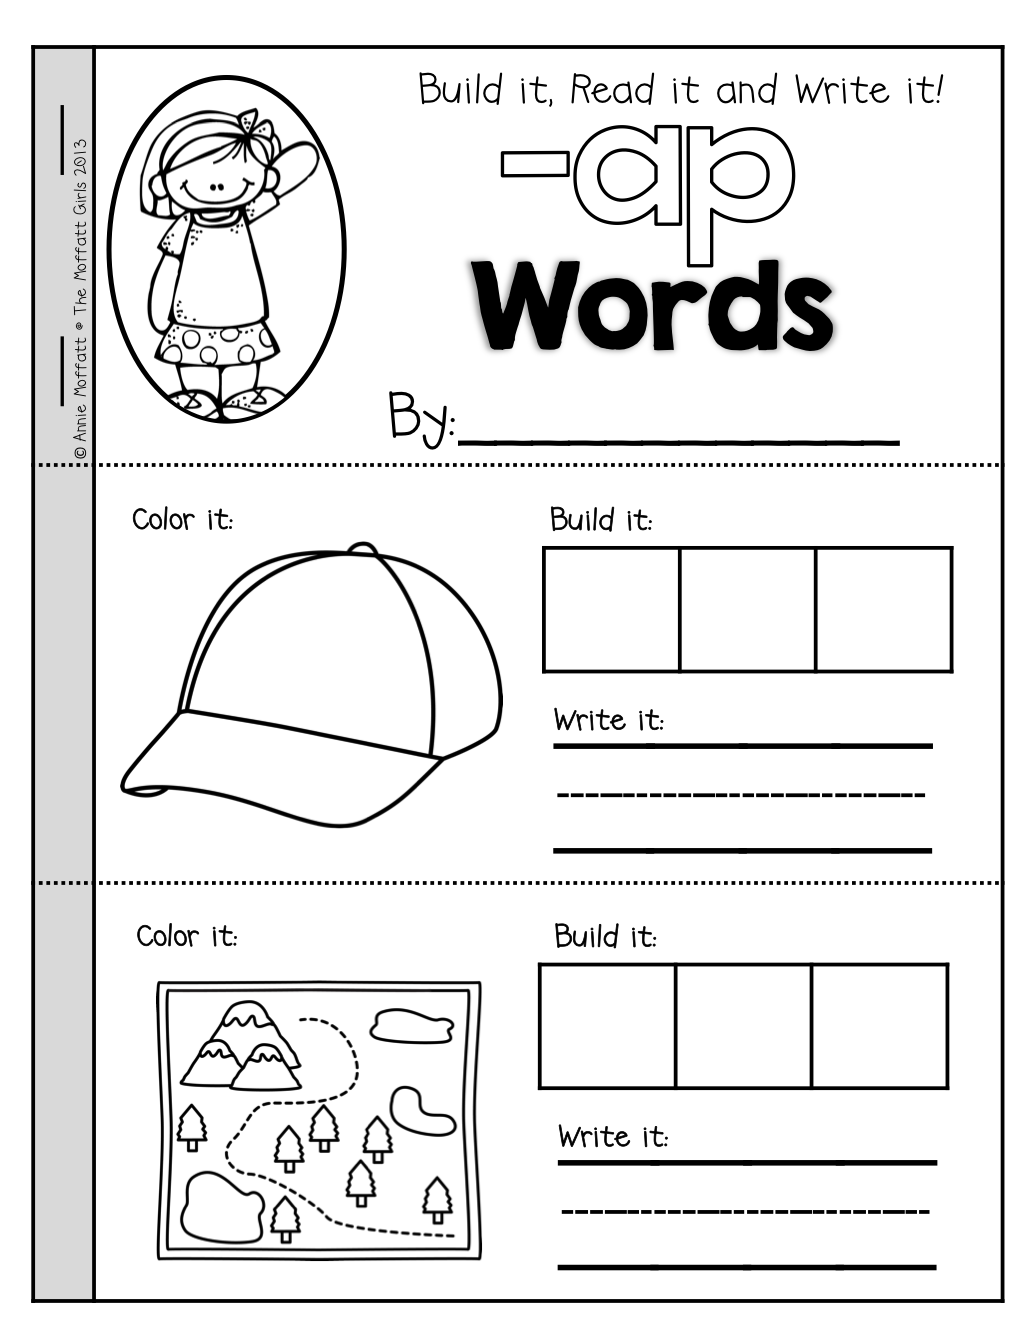 Cvc Booklets To Help Build Read And Write Simple Cvc Words Cvc Words Word Family Activities Words [ 1325 x 1024 Pixel ]